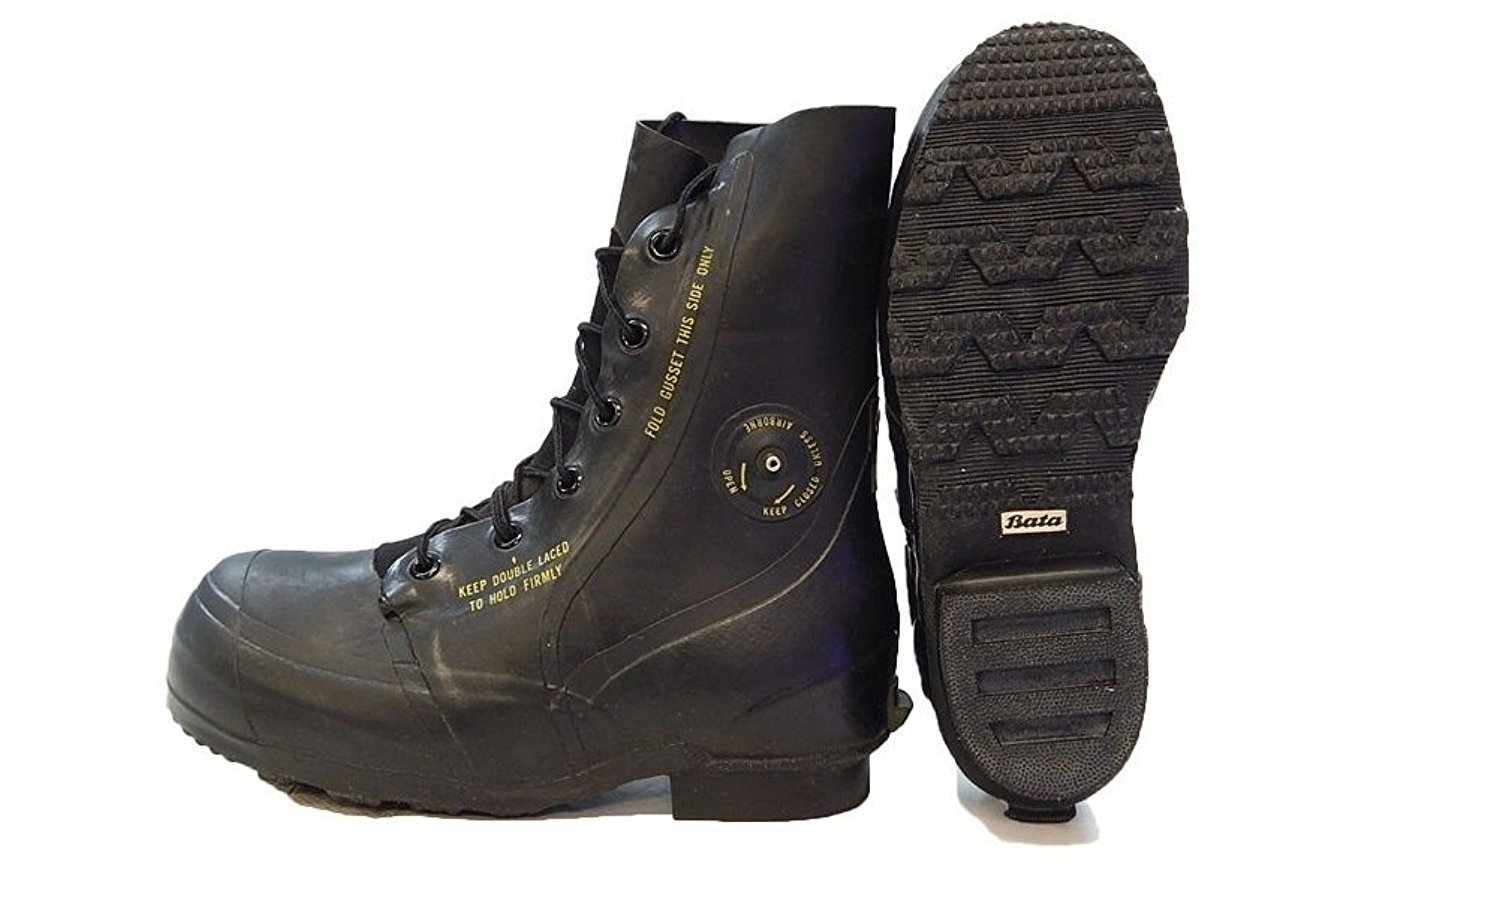 Combat Boot, ''Mickey Mouse'' Extreme Cold Weather Boots, Waterproof Rubber, Genuine U.S. Military Issue, NSN 8430-00-823-7037, 7 Wide